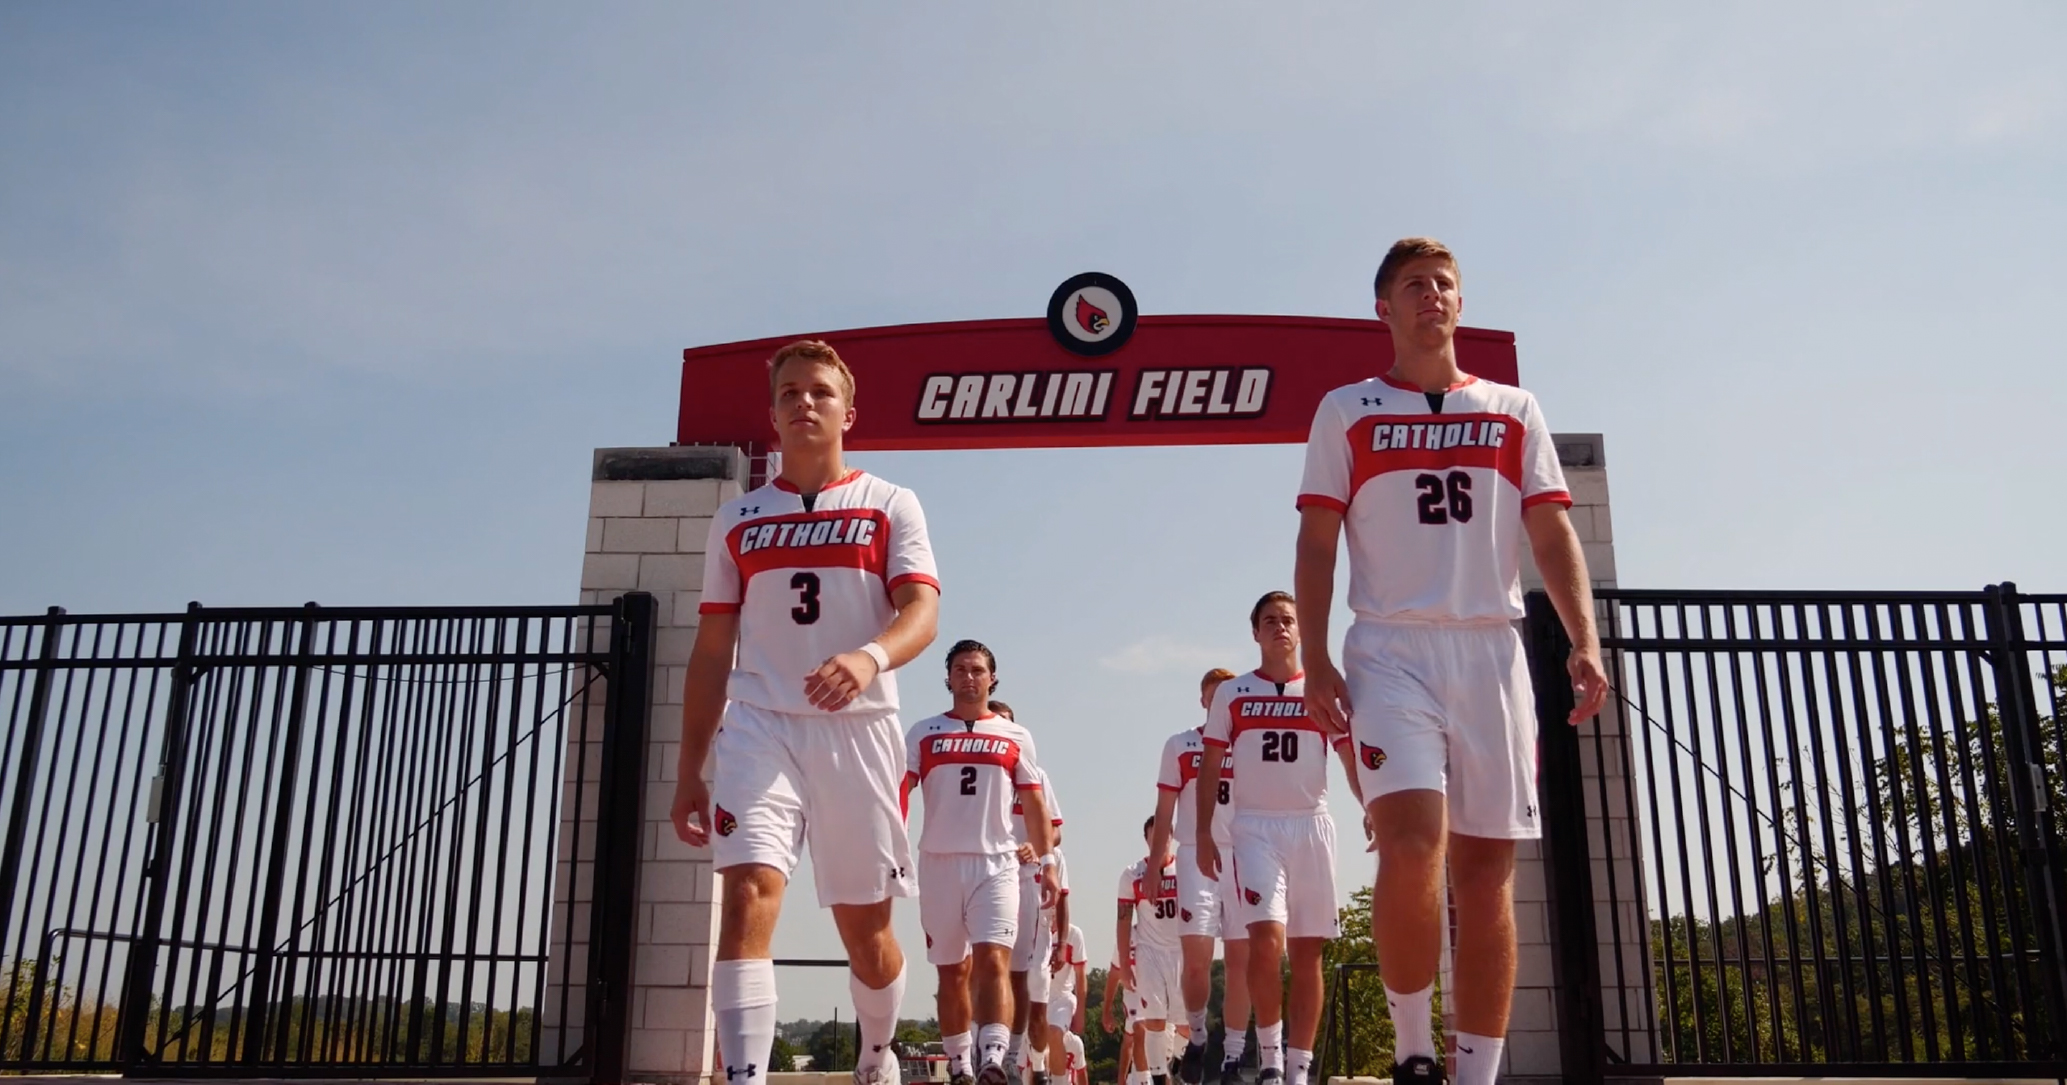 Men's soccer team entering Carlini Field